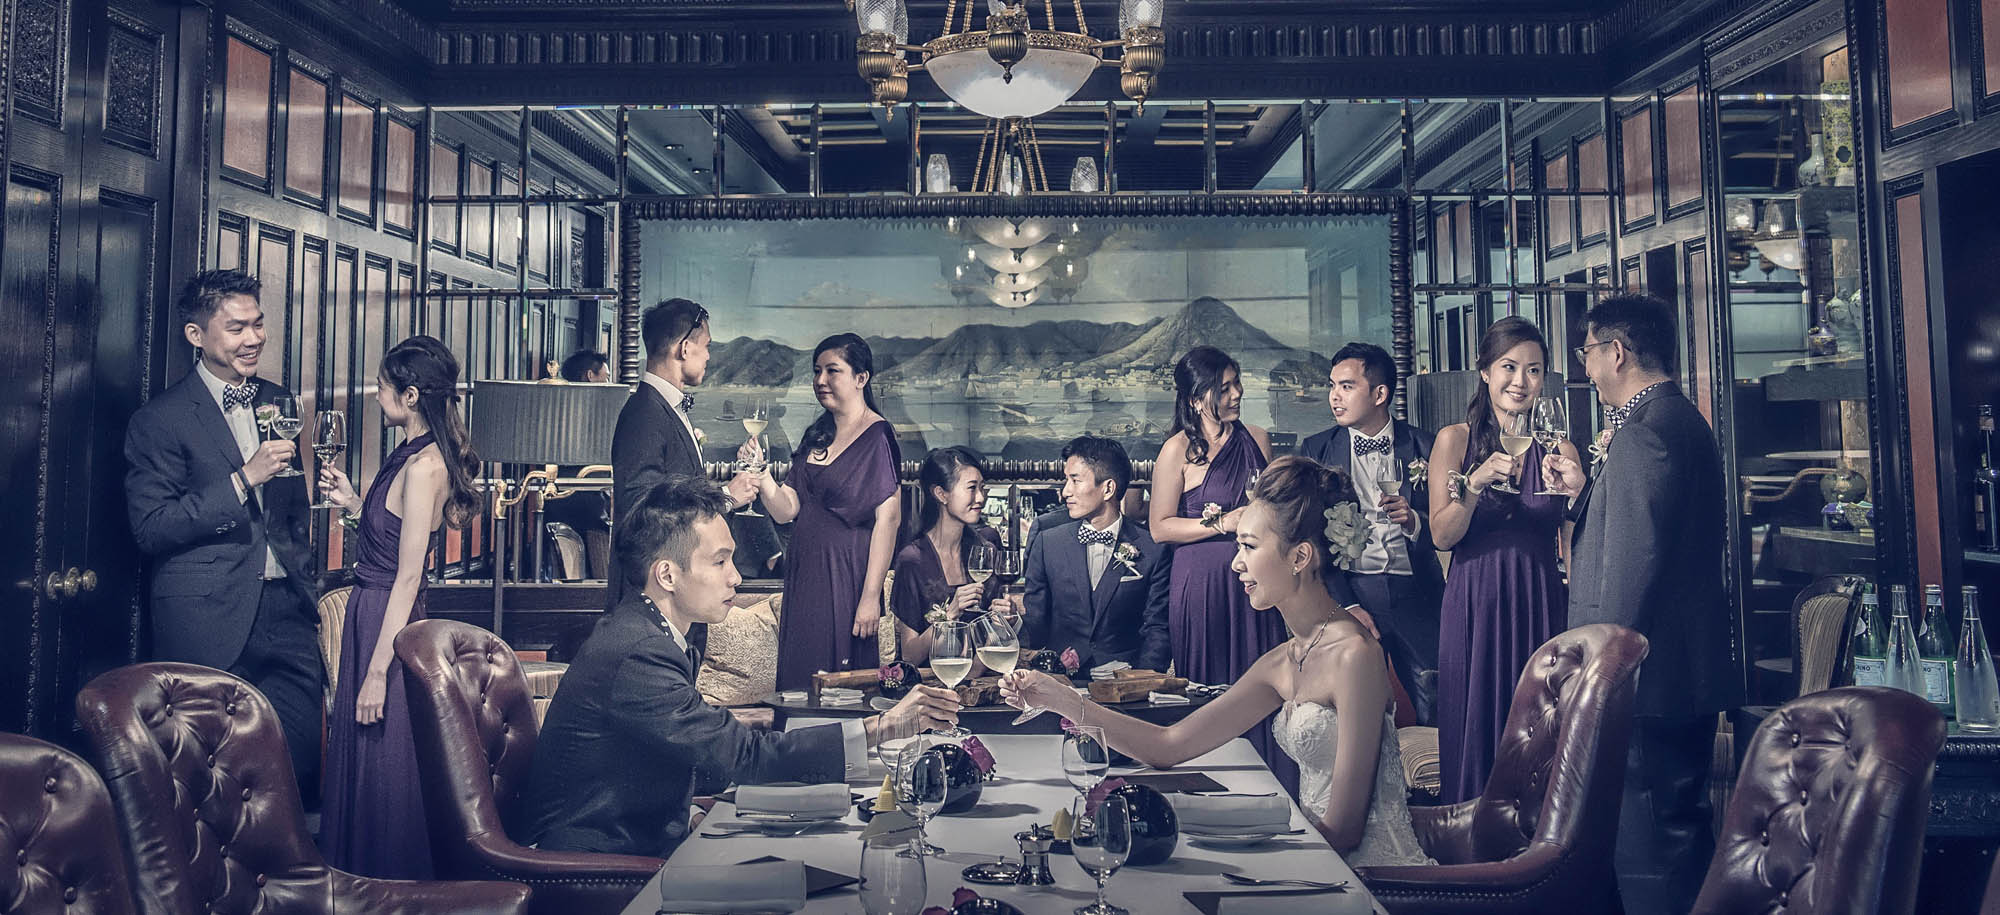 Wedding party in a stylized restaurant shot, by CM Leung